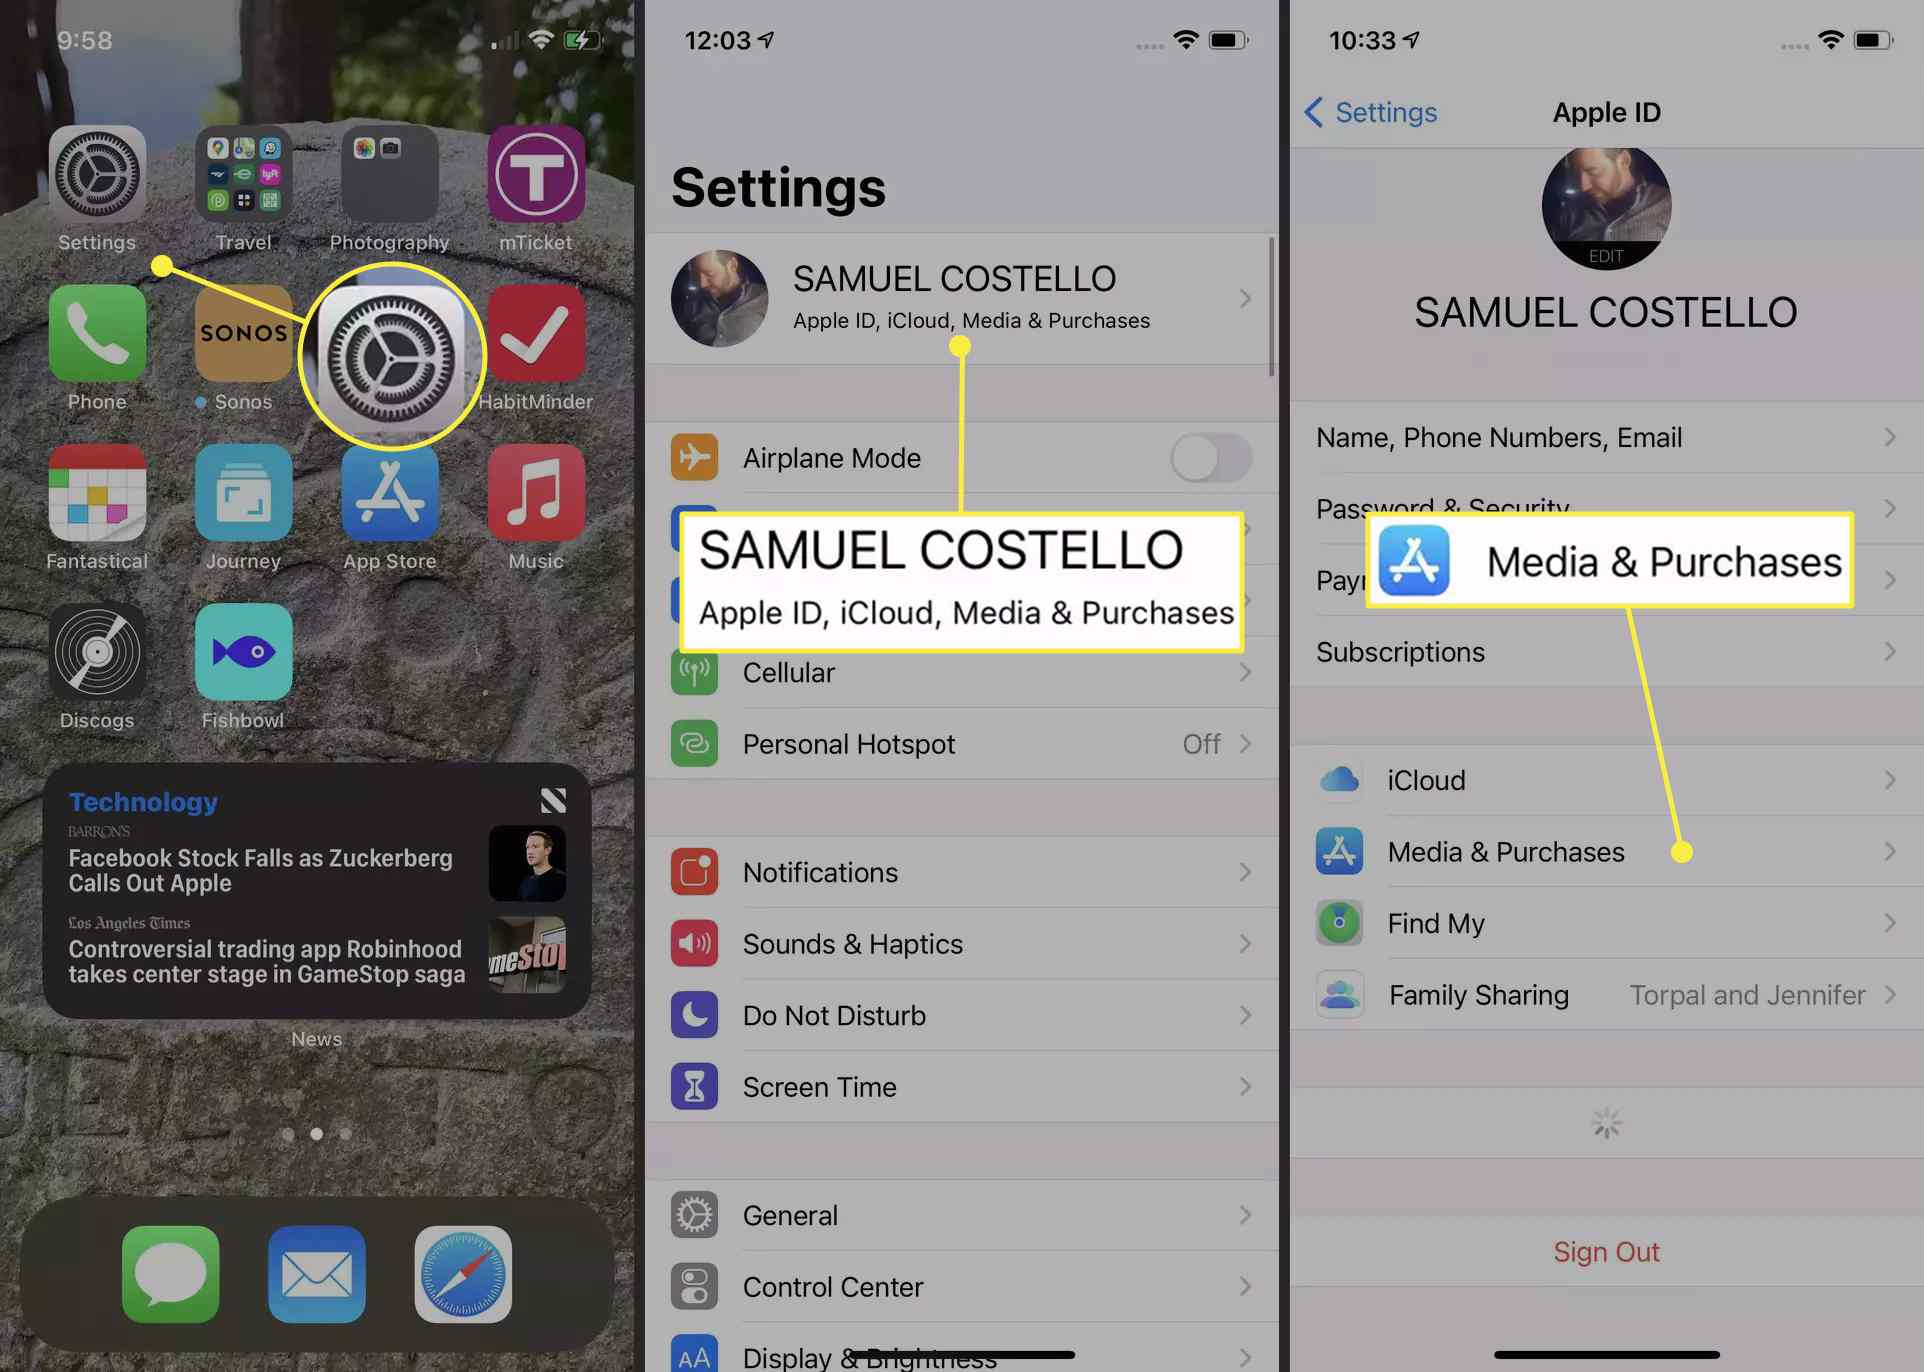 An iPhone user accesses their media and purchases within the Settings app